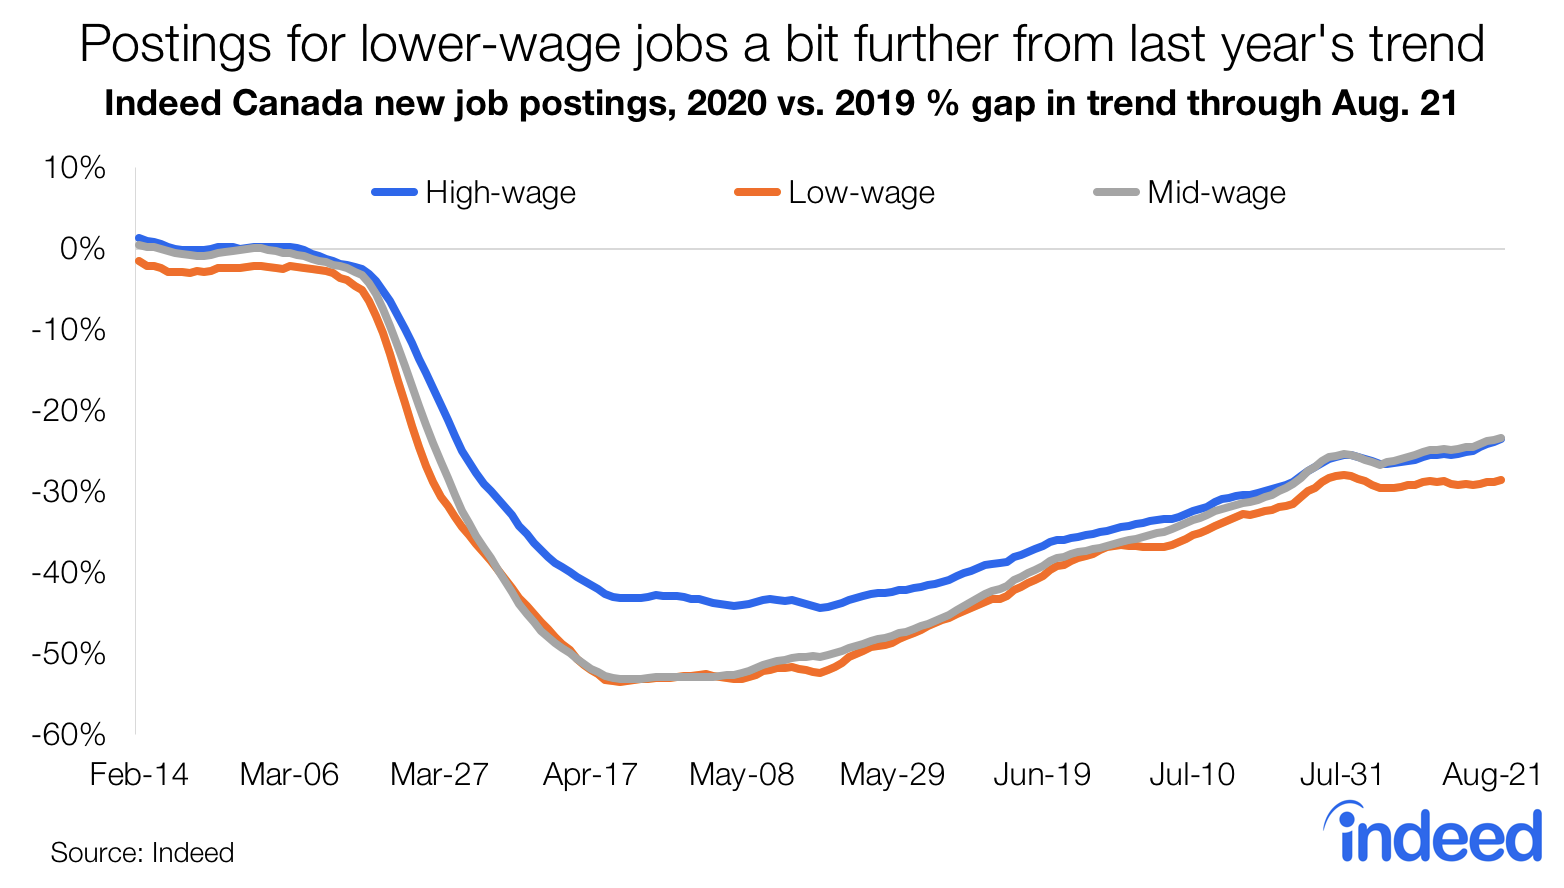 Postings for lower wage jobs a bit further from last year's trend